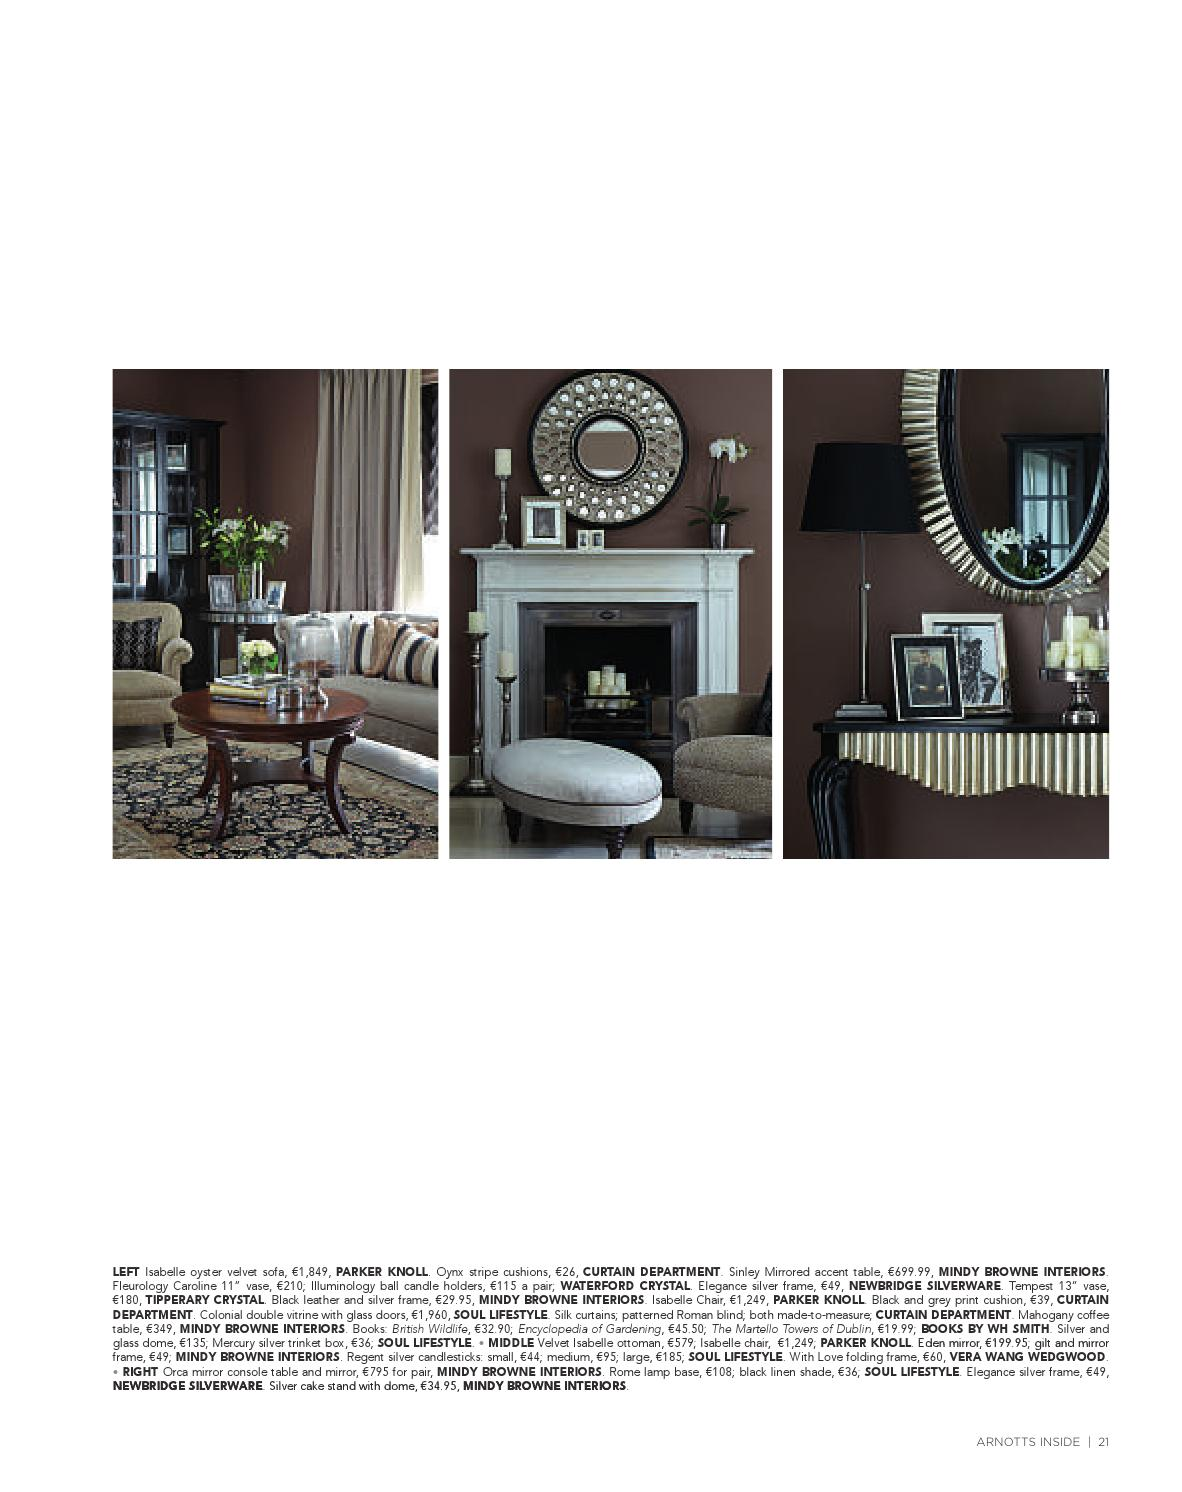 Arnotts inside home magazine by arnotts issuu